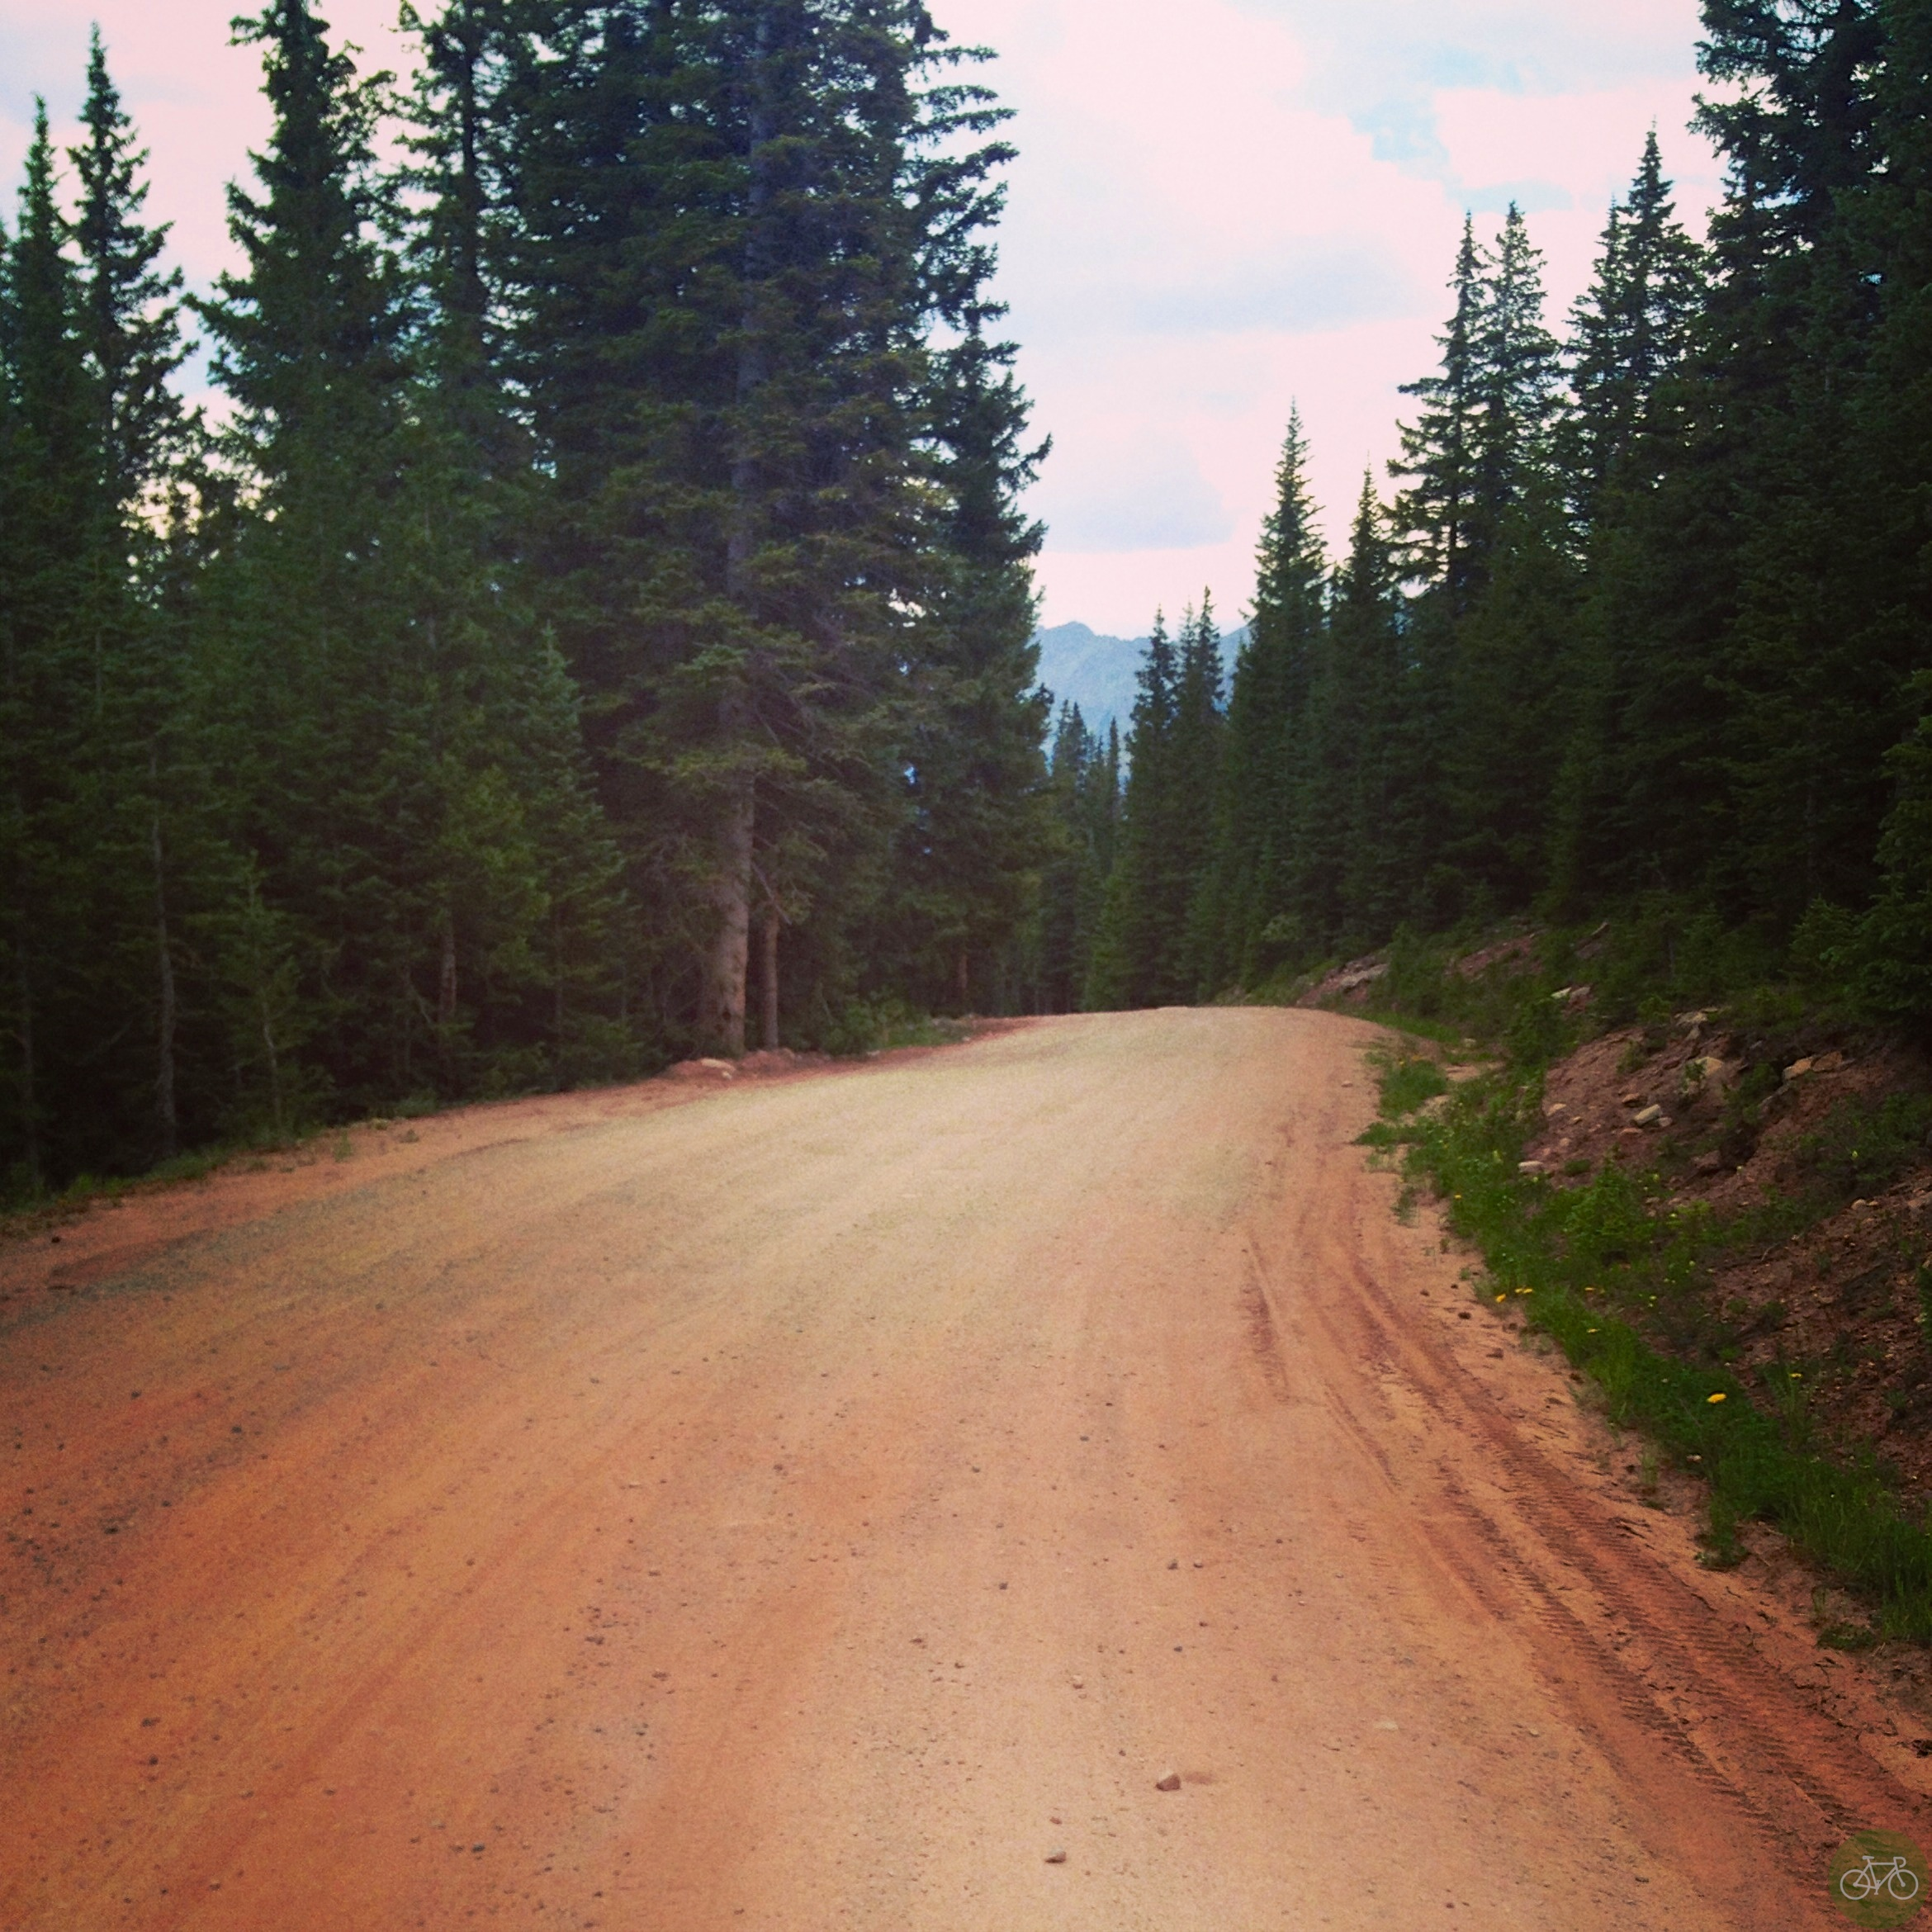 Mountain Bikes, Marmots, and Fire Roads